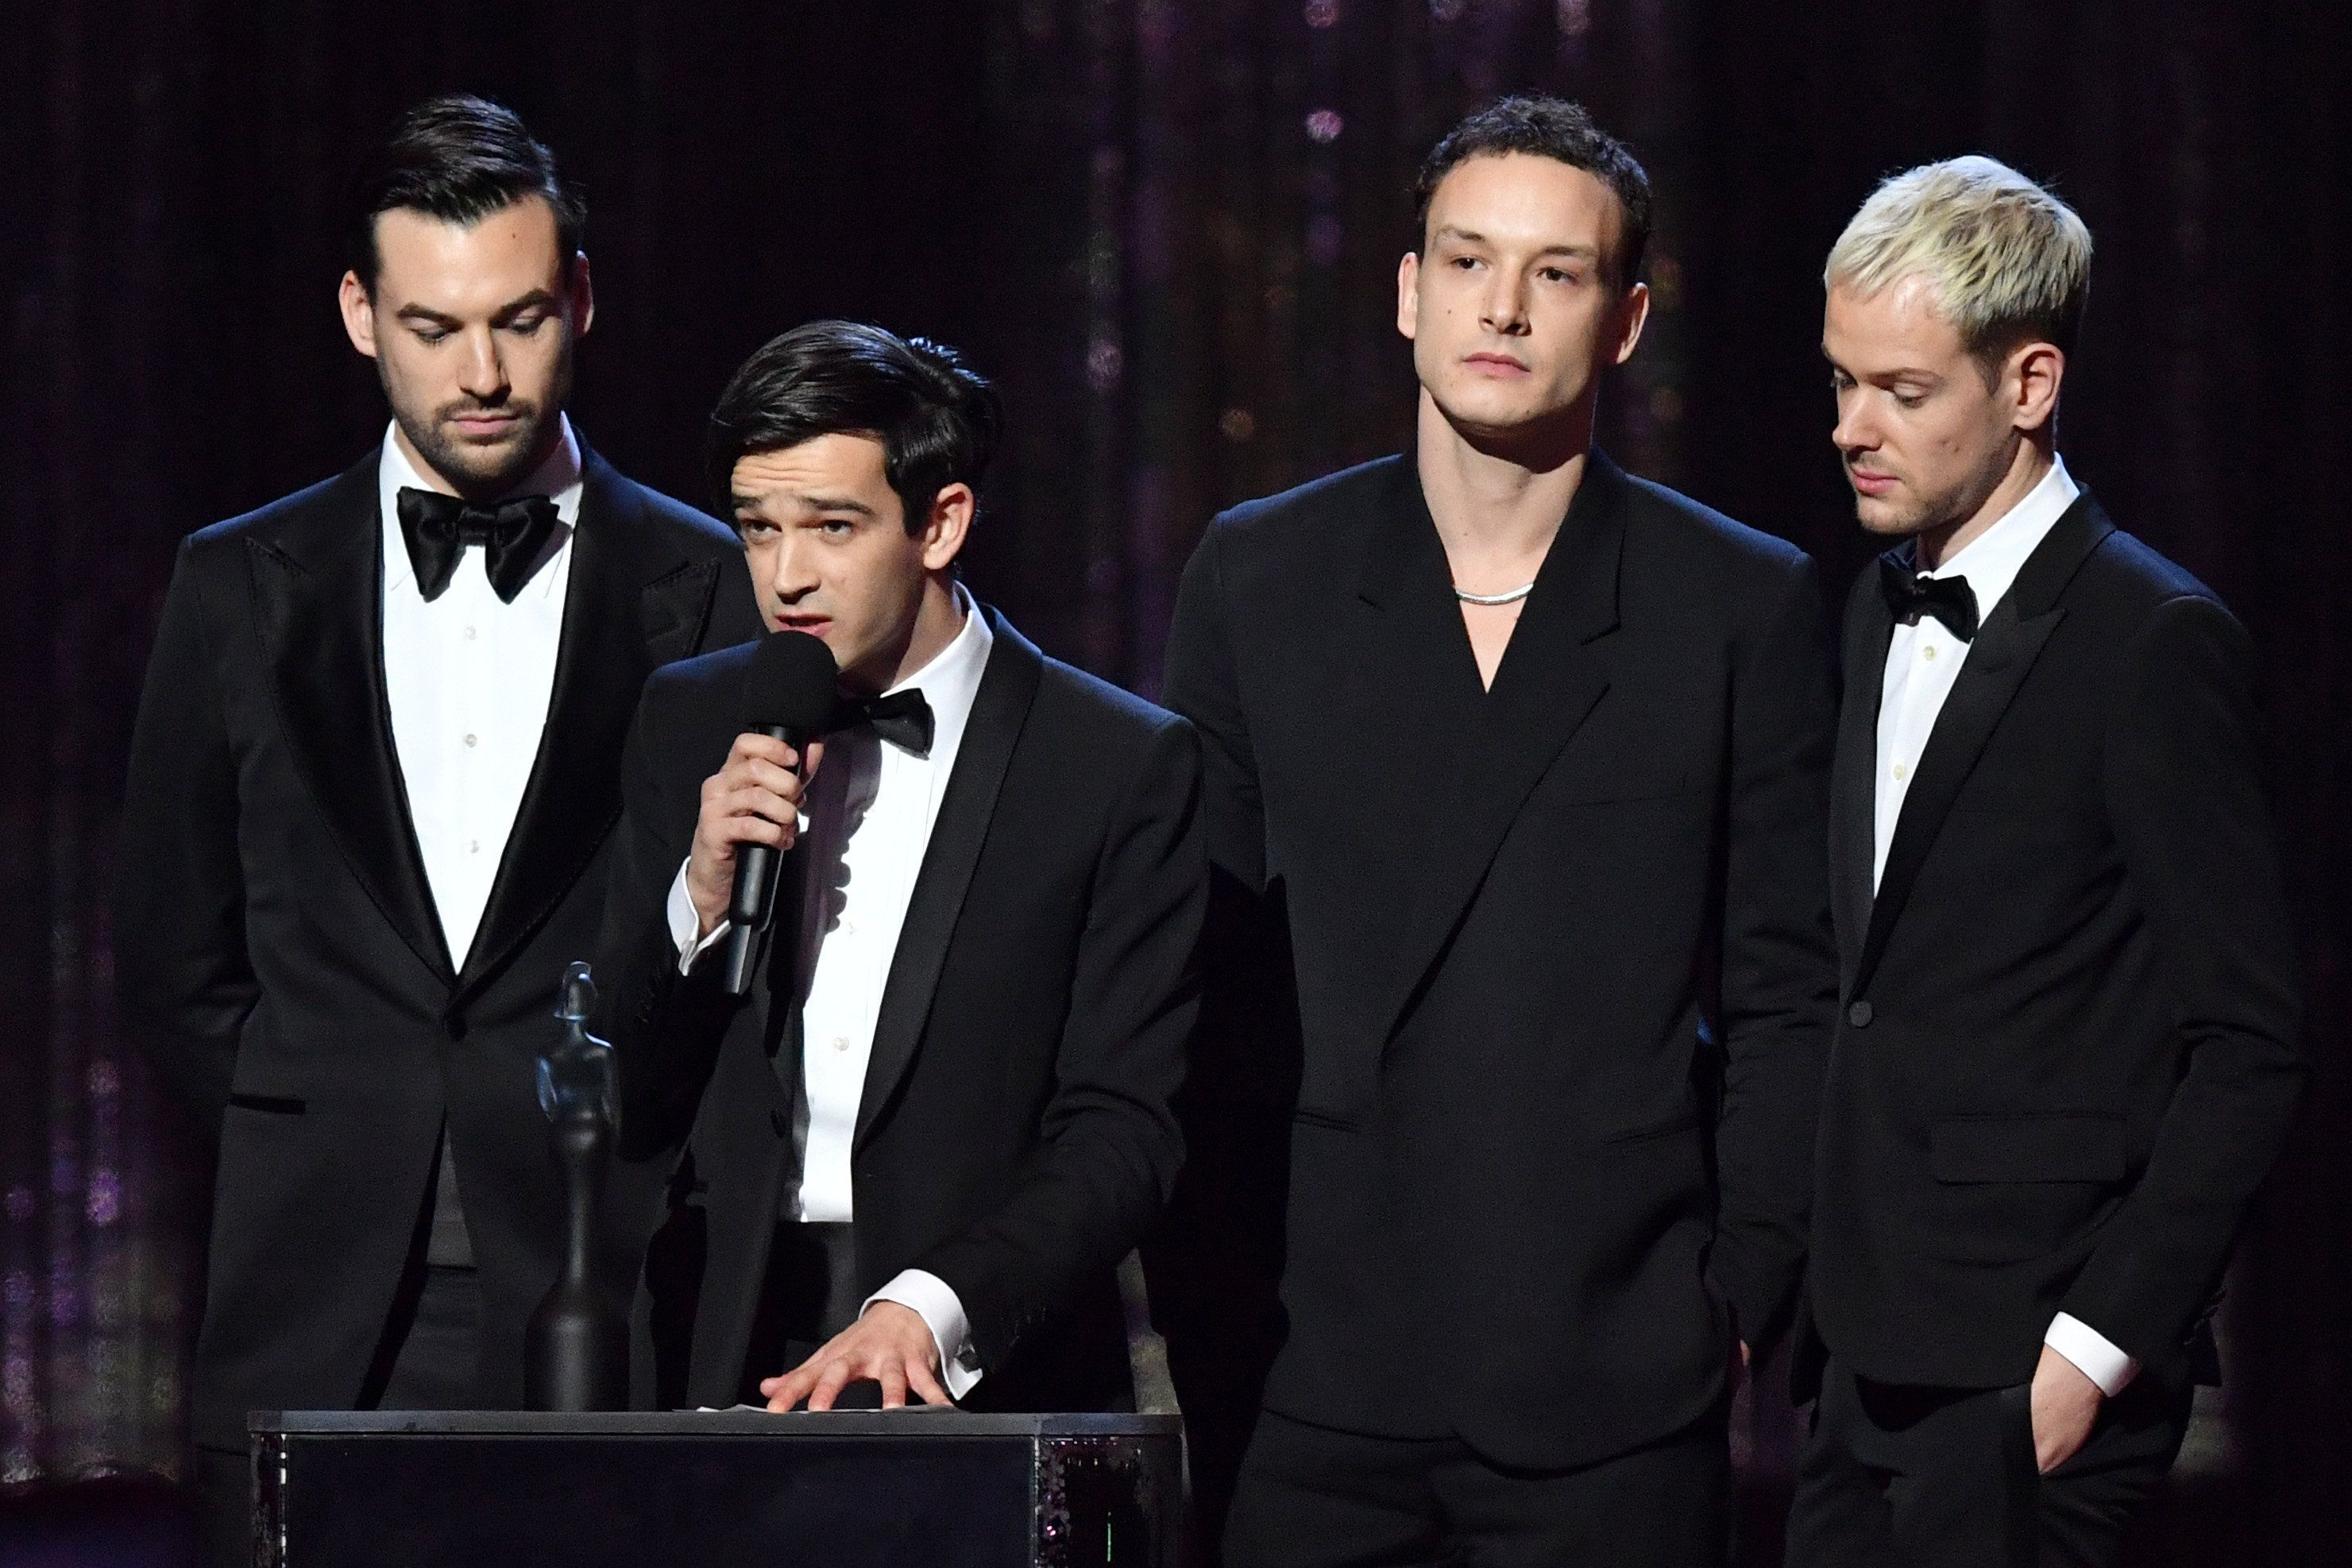 The 1975 collecting one of their two awards